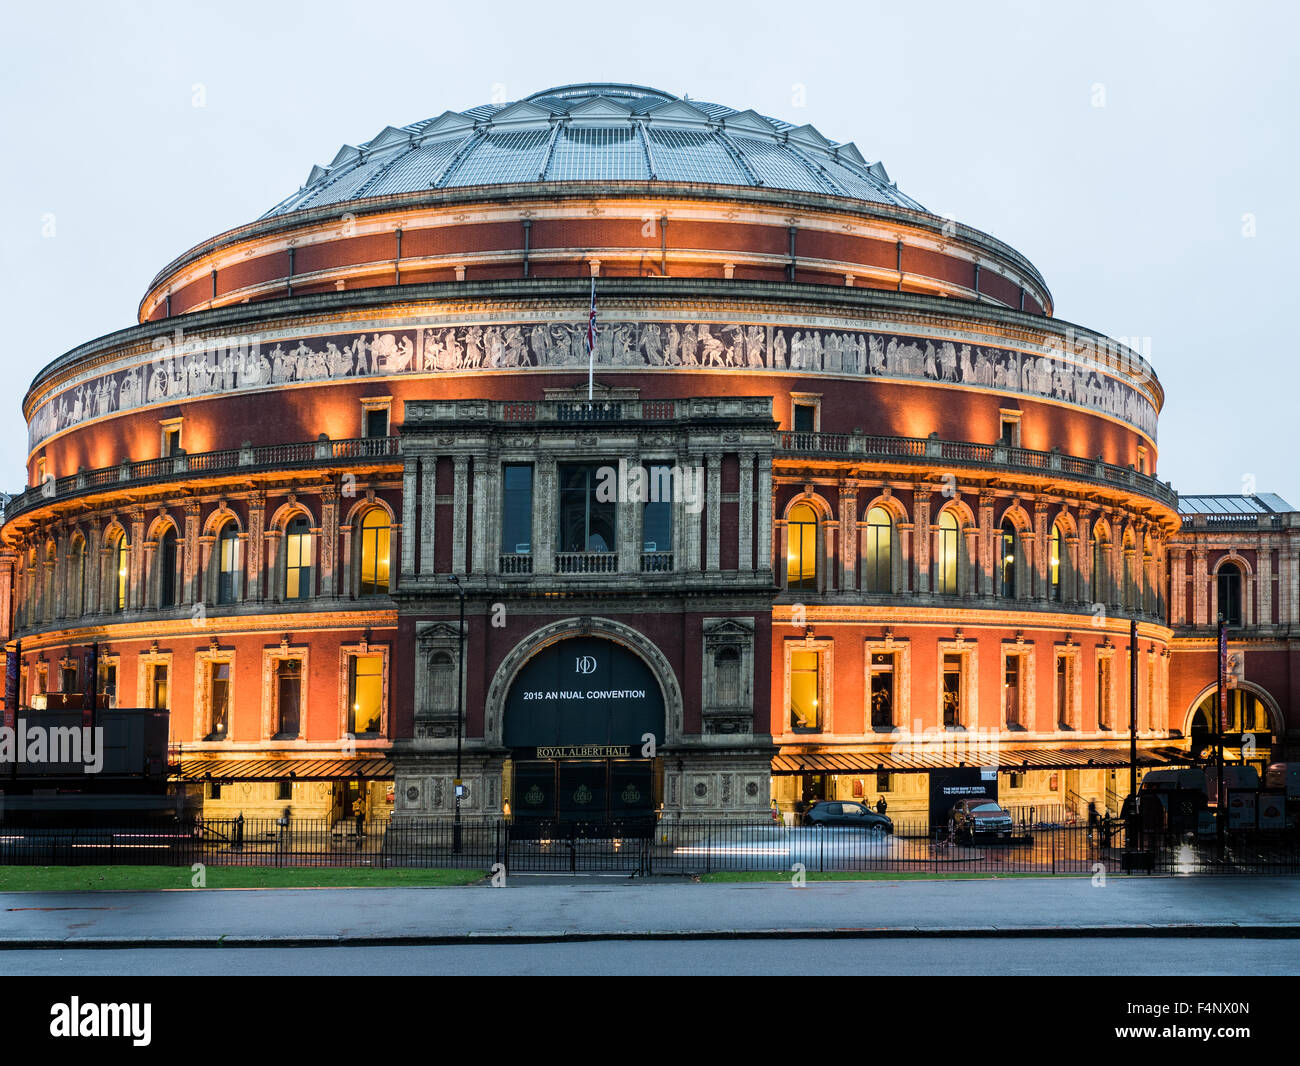 Royal albert hall london a concert hall opened in 1871 for Door 8 royal albert hall